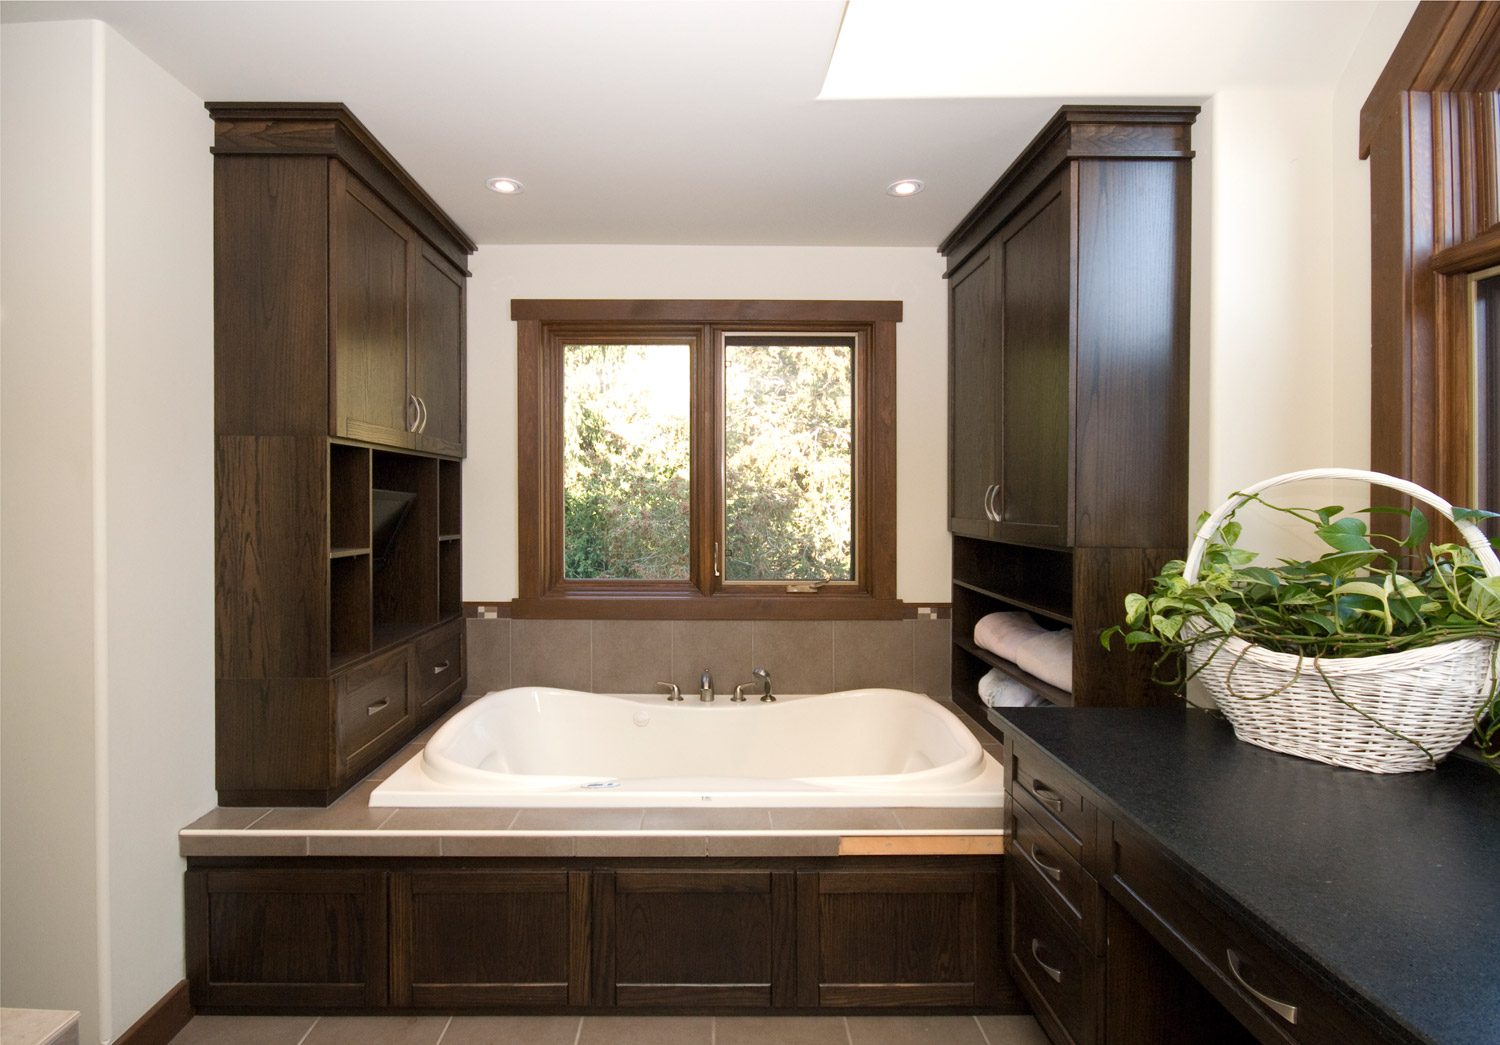 large ensuite bathroom design and renovation in barrie ontario with dark cabinets and soaker tub with TV